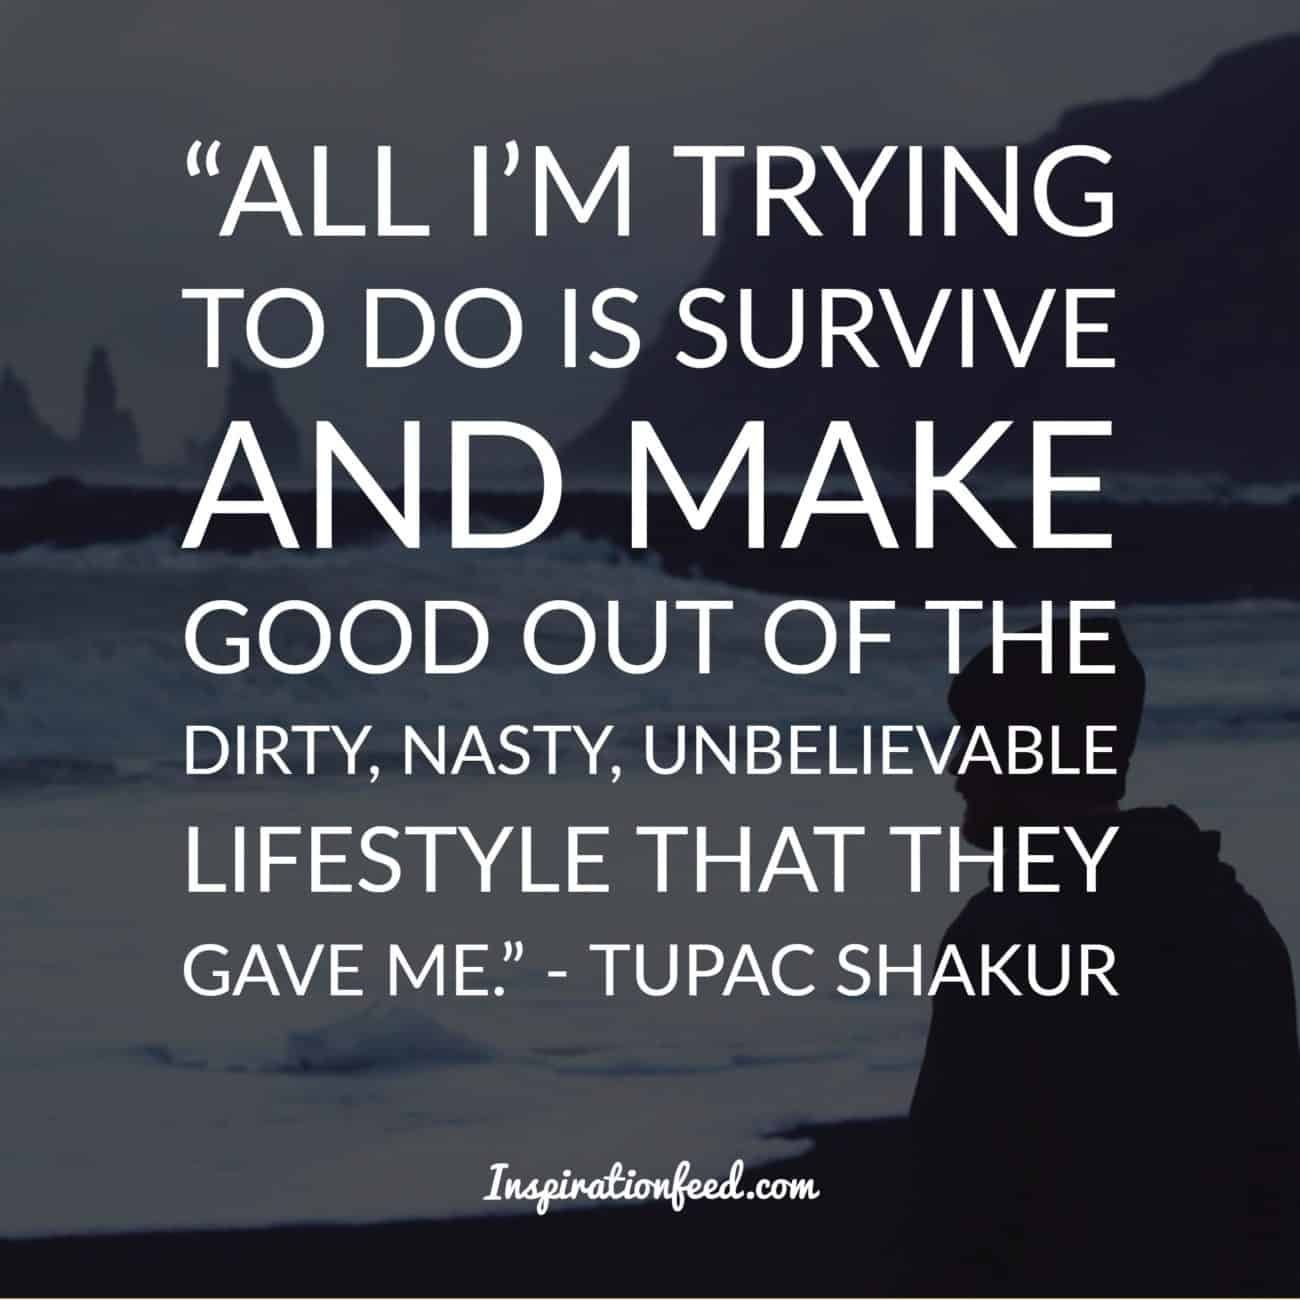 30 Best Tupac Shakur Quotes On Life Love People Inspirationfeed Tupac Shakur Quotes Tupac Quotes Gangsta Quotes